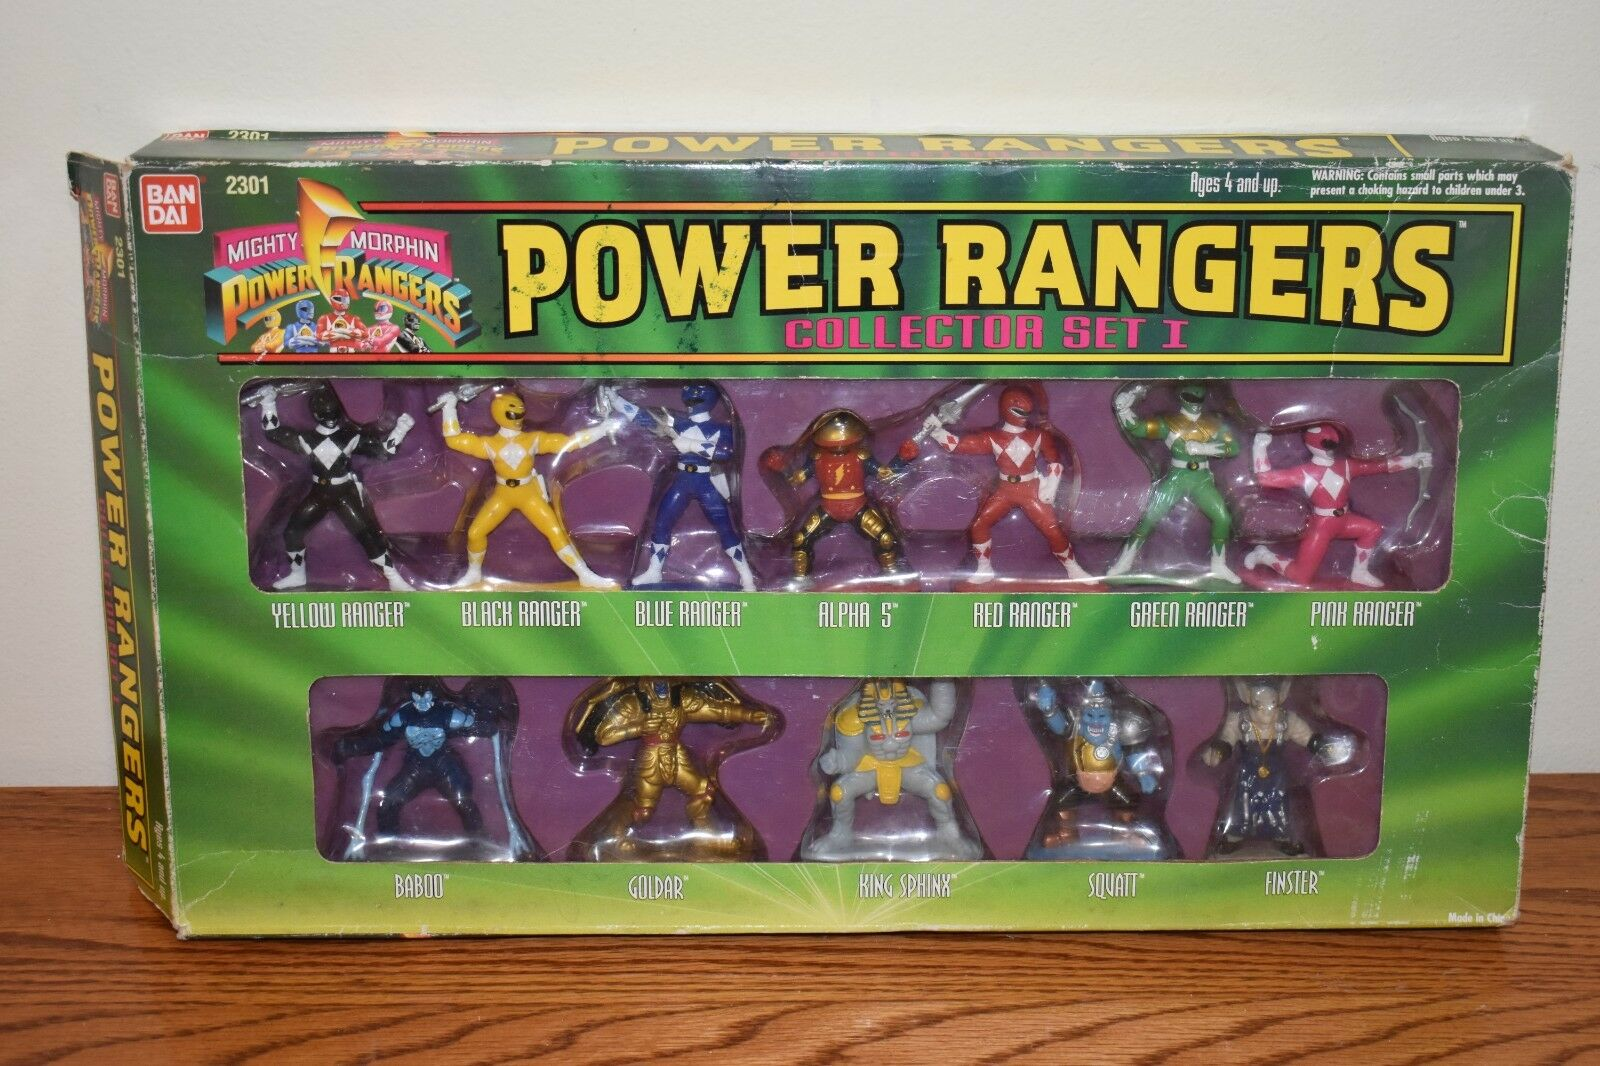 1994 Ban Dai Mighty Morphin POWER RANGERS COLLECTOR SET I I I (1) 8cab71